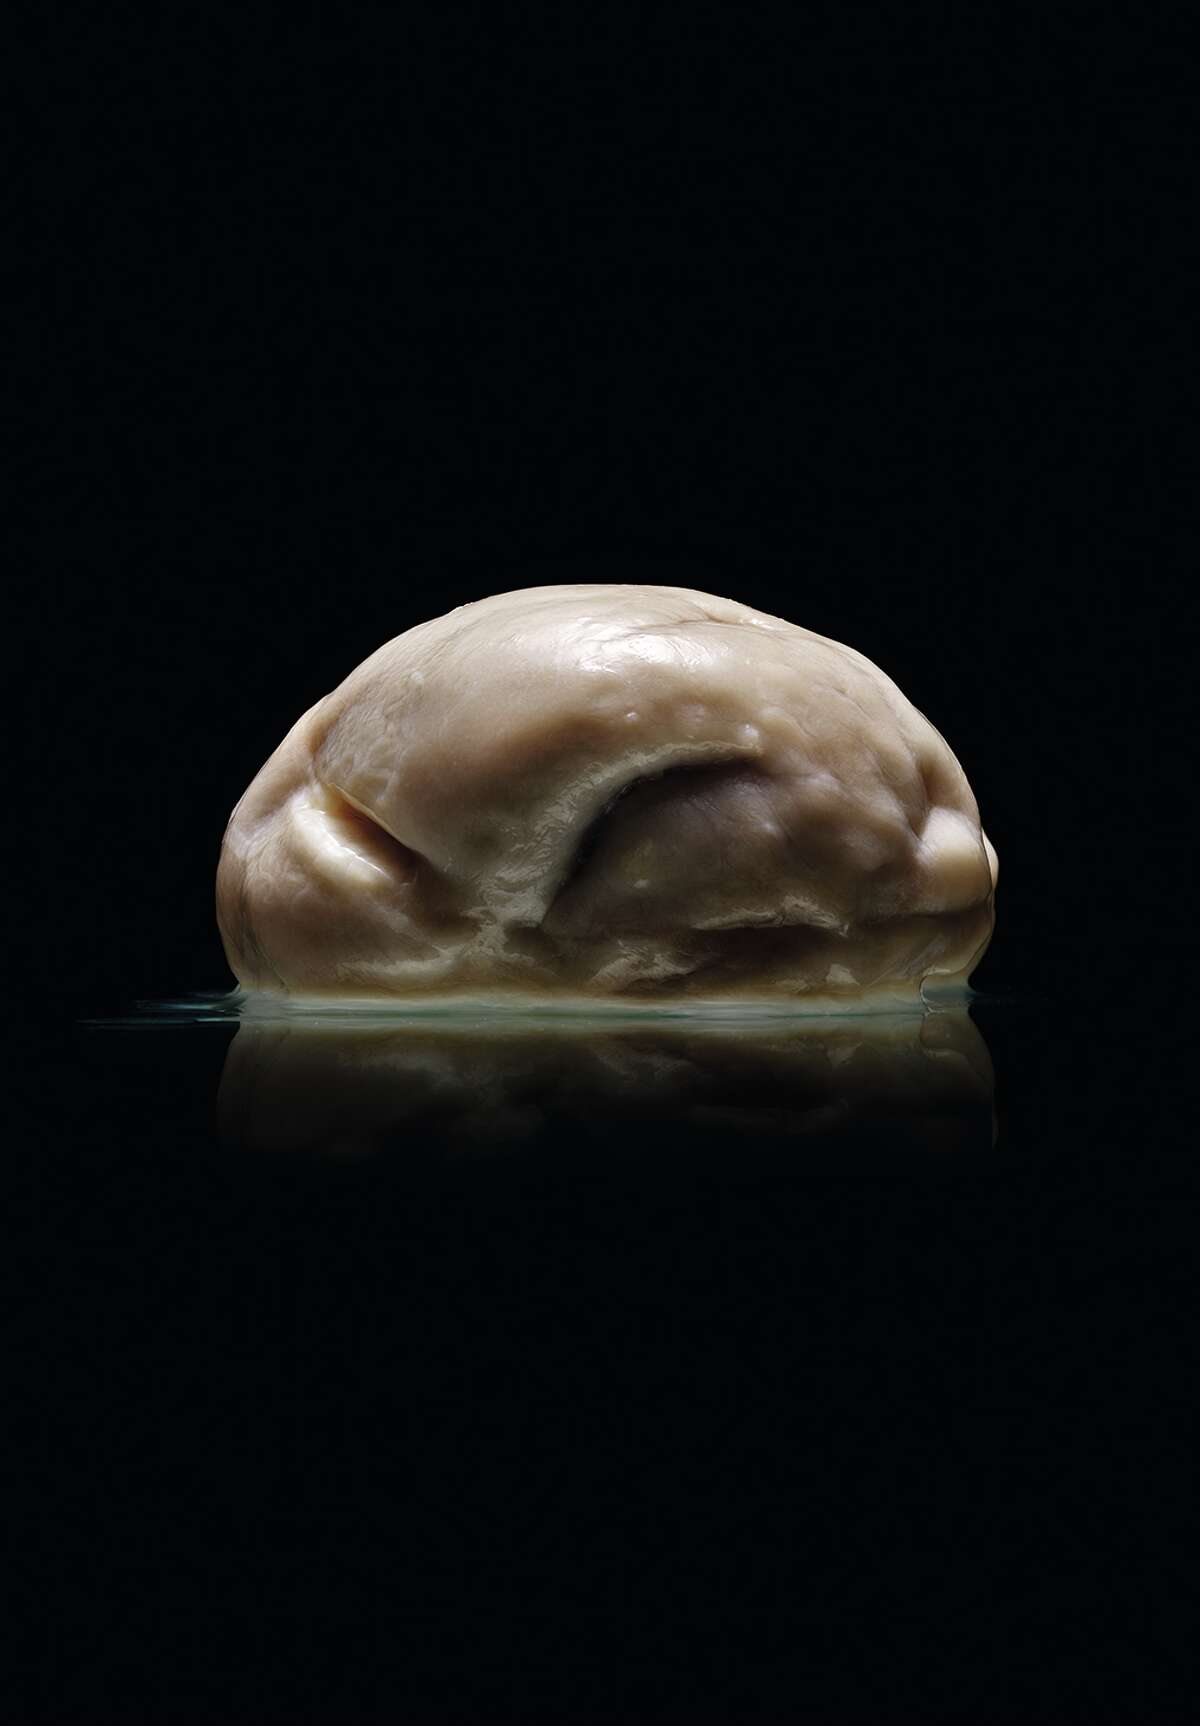 """""""Malformed: Forgotten Brains of the Texas State Mental Hospital"""" - authored by Austin photographer Adam Voorhes and journalist Alex Hannaford - shows dozens of photographs of brains of former patients treated at the State Lunatic Asylum, now the Austin State Hospital, from 1952 to 1983. Voorhes said he and Robin Finlay, Voorhes' wife and business partner, discovered the collection - preserved in formaldehyde in several glass containers - at the University of Texas at Austin while on assignment to photograph a different brain in 2011. Pictured, a brain from the collection."""